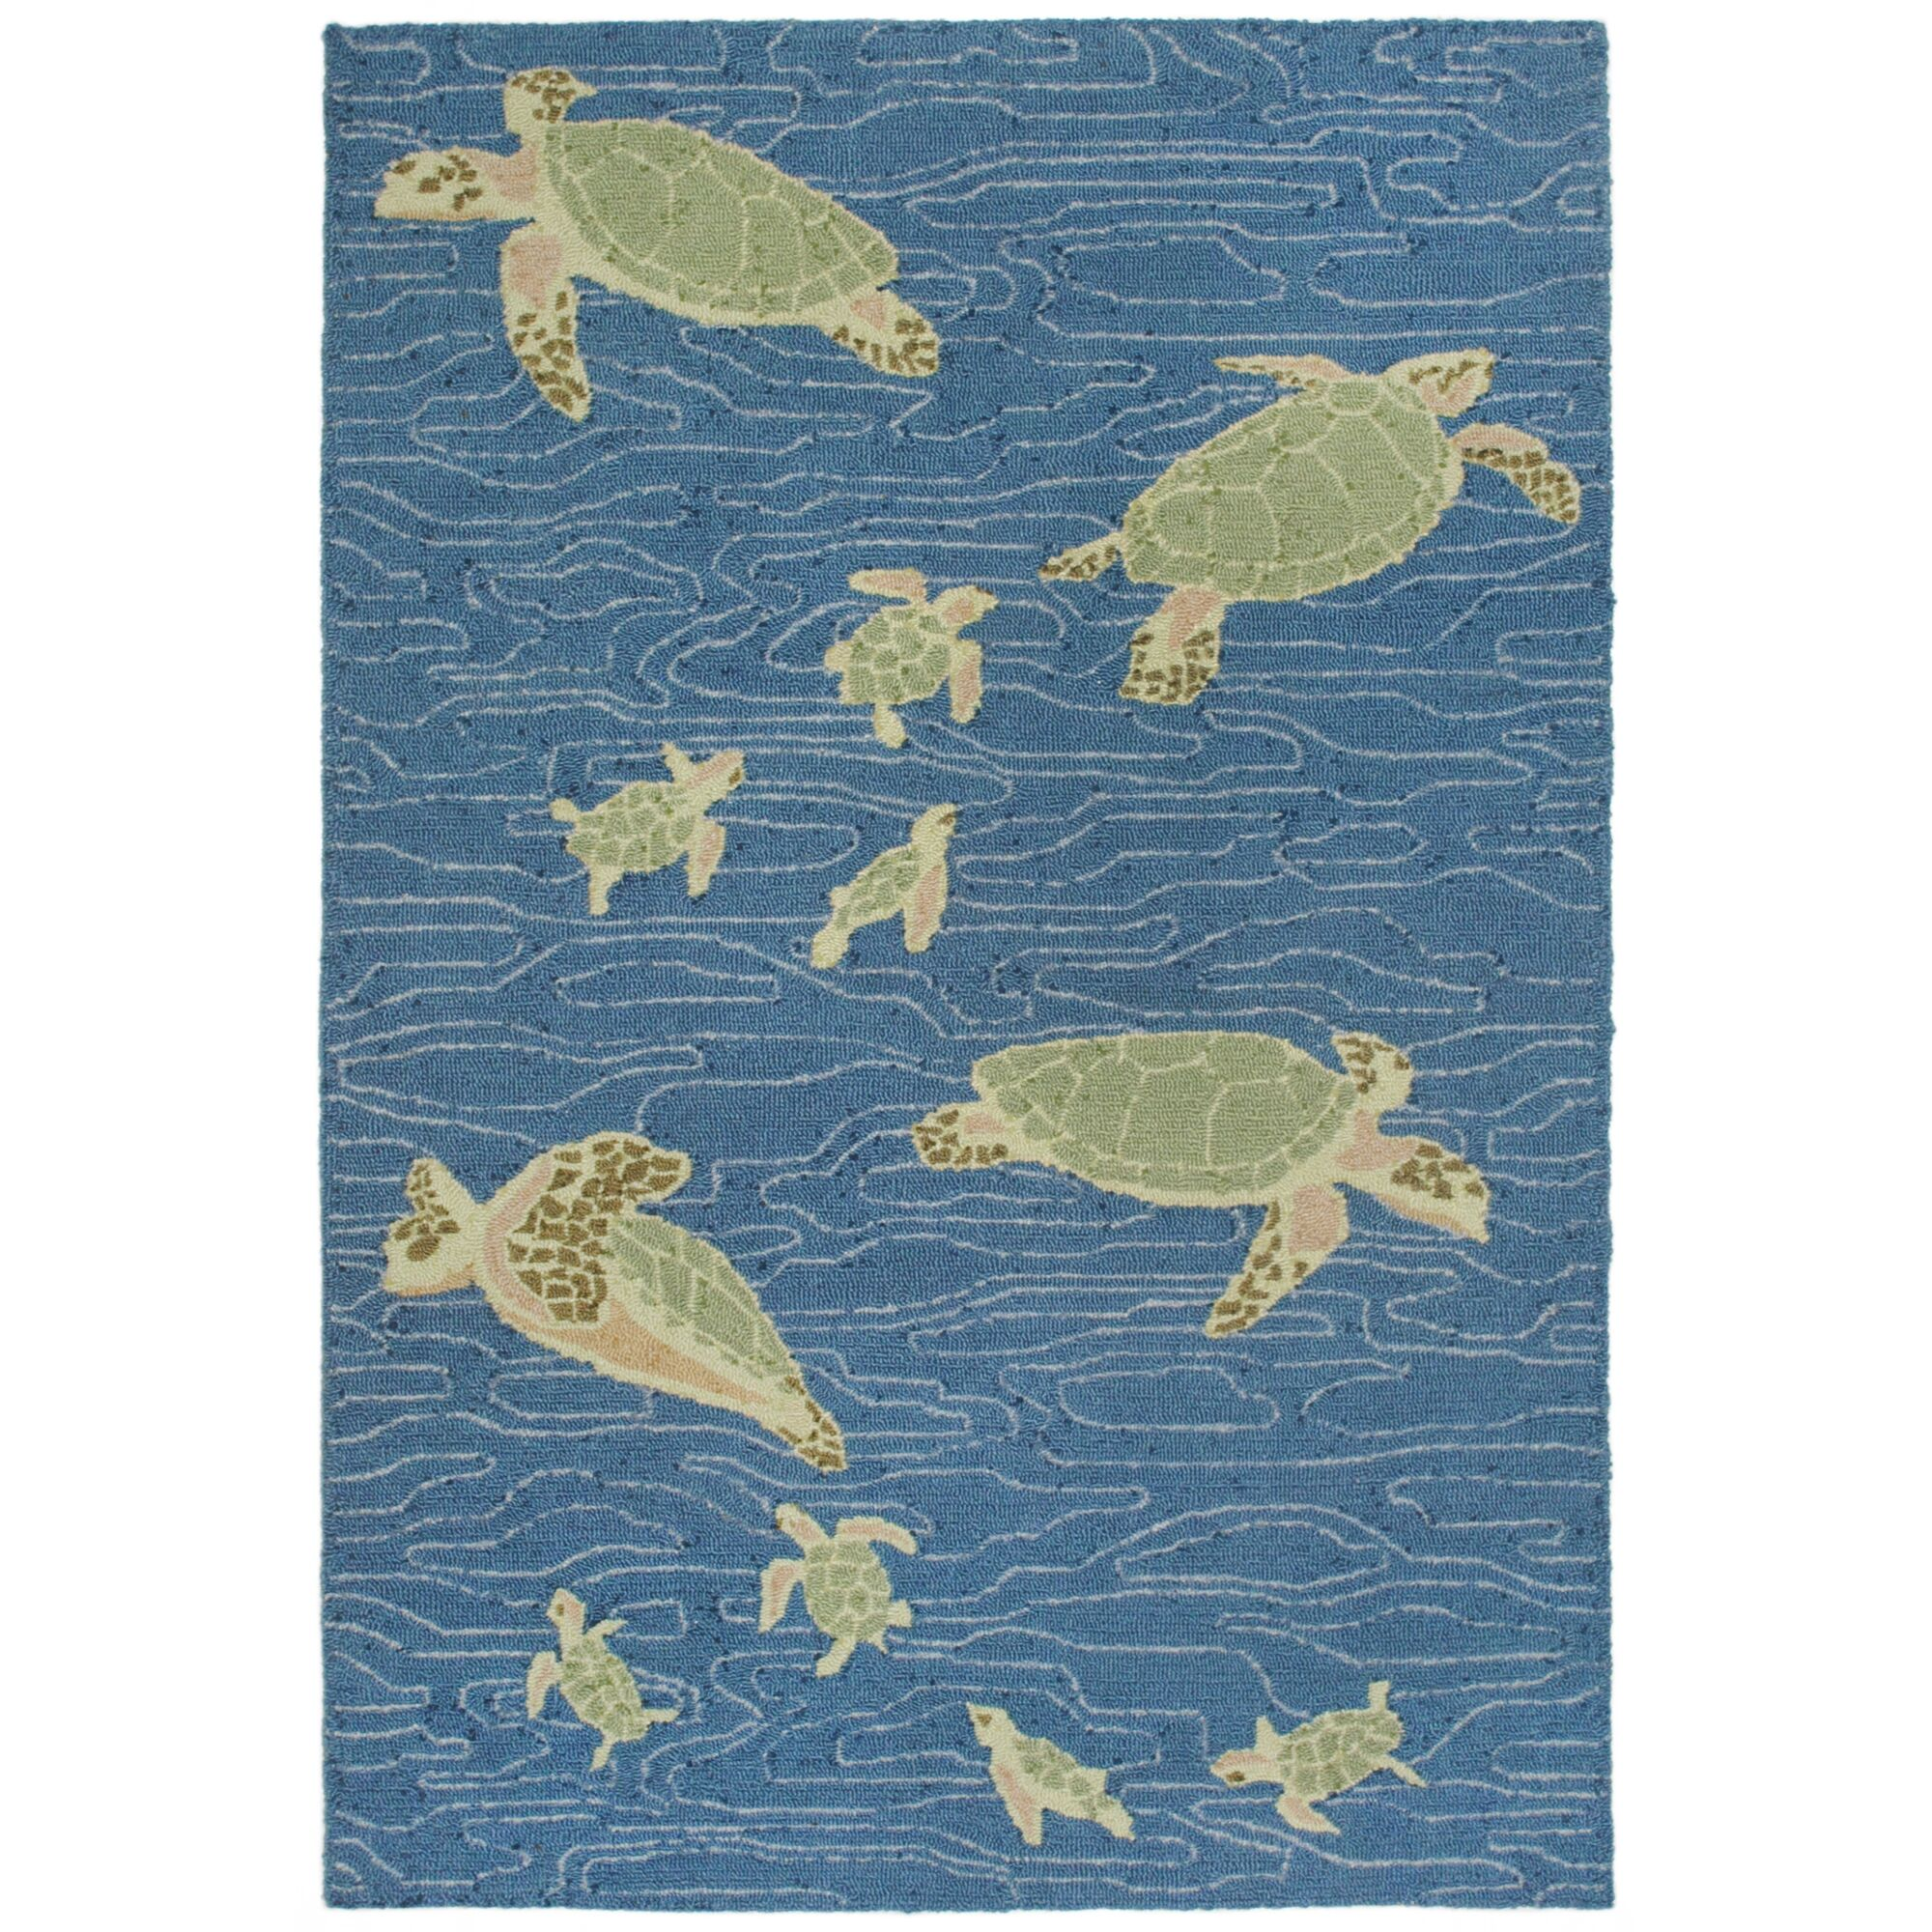 Nancee Sea Turtles Hand-Tufted Blue/Green Area Rug Rug Size: Rectangle 8'3